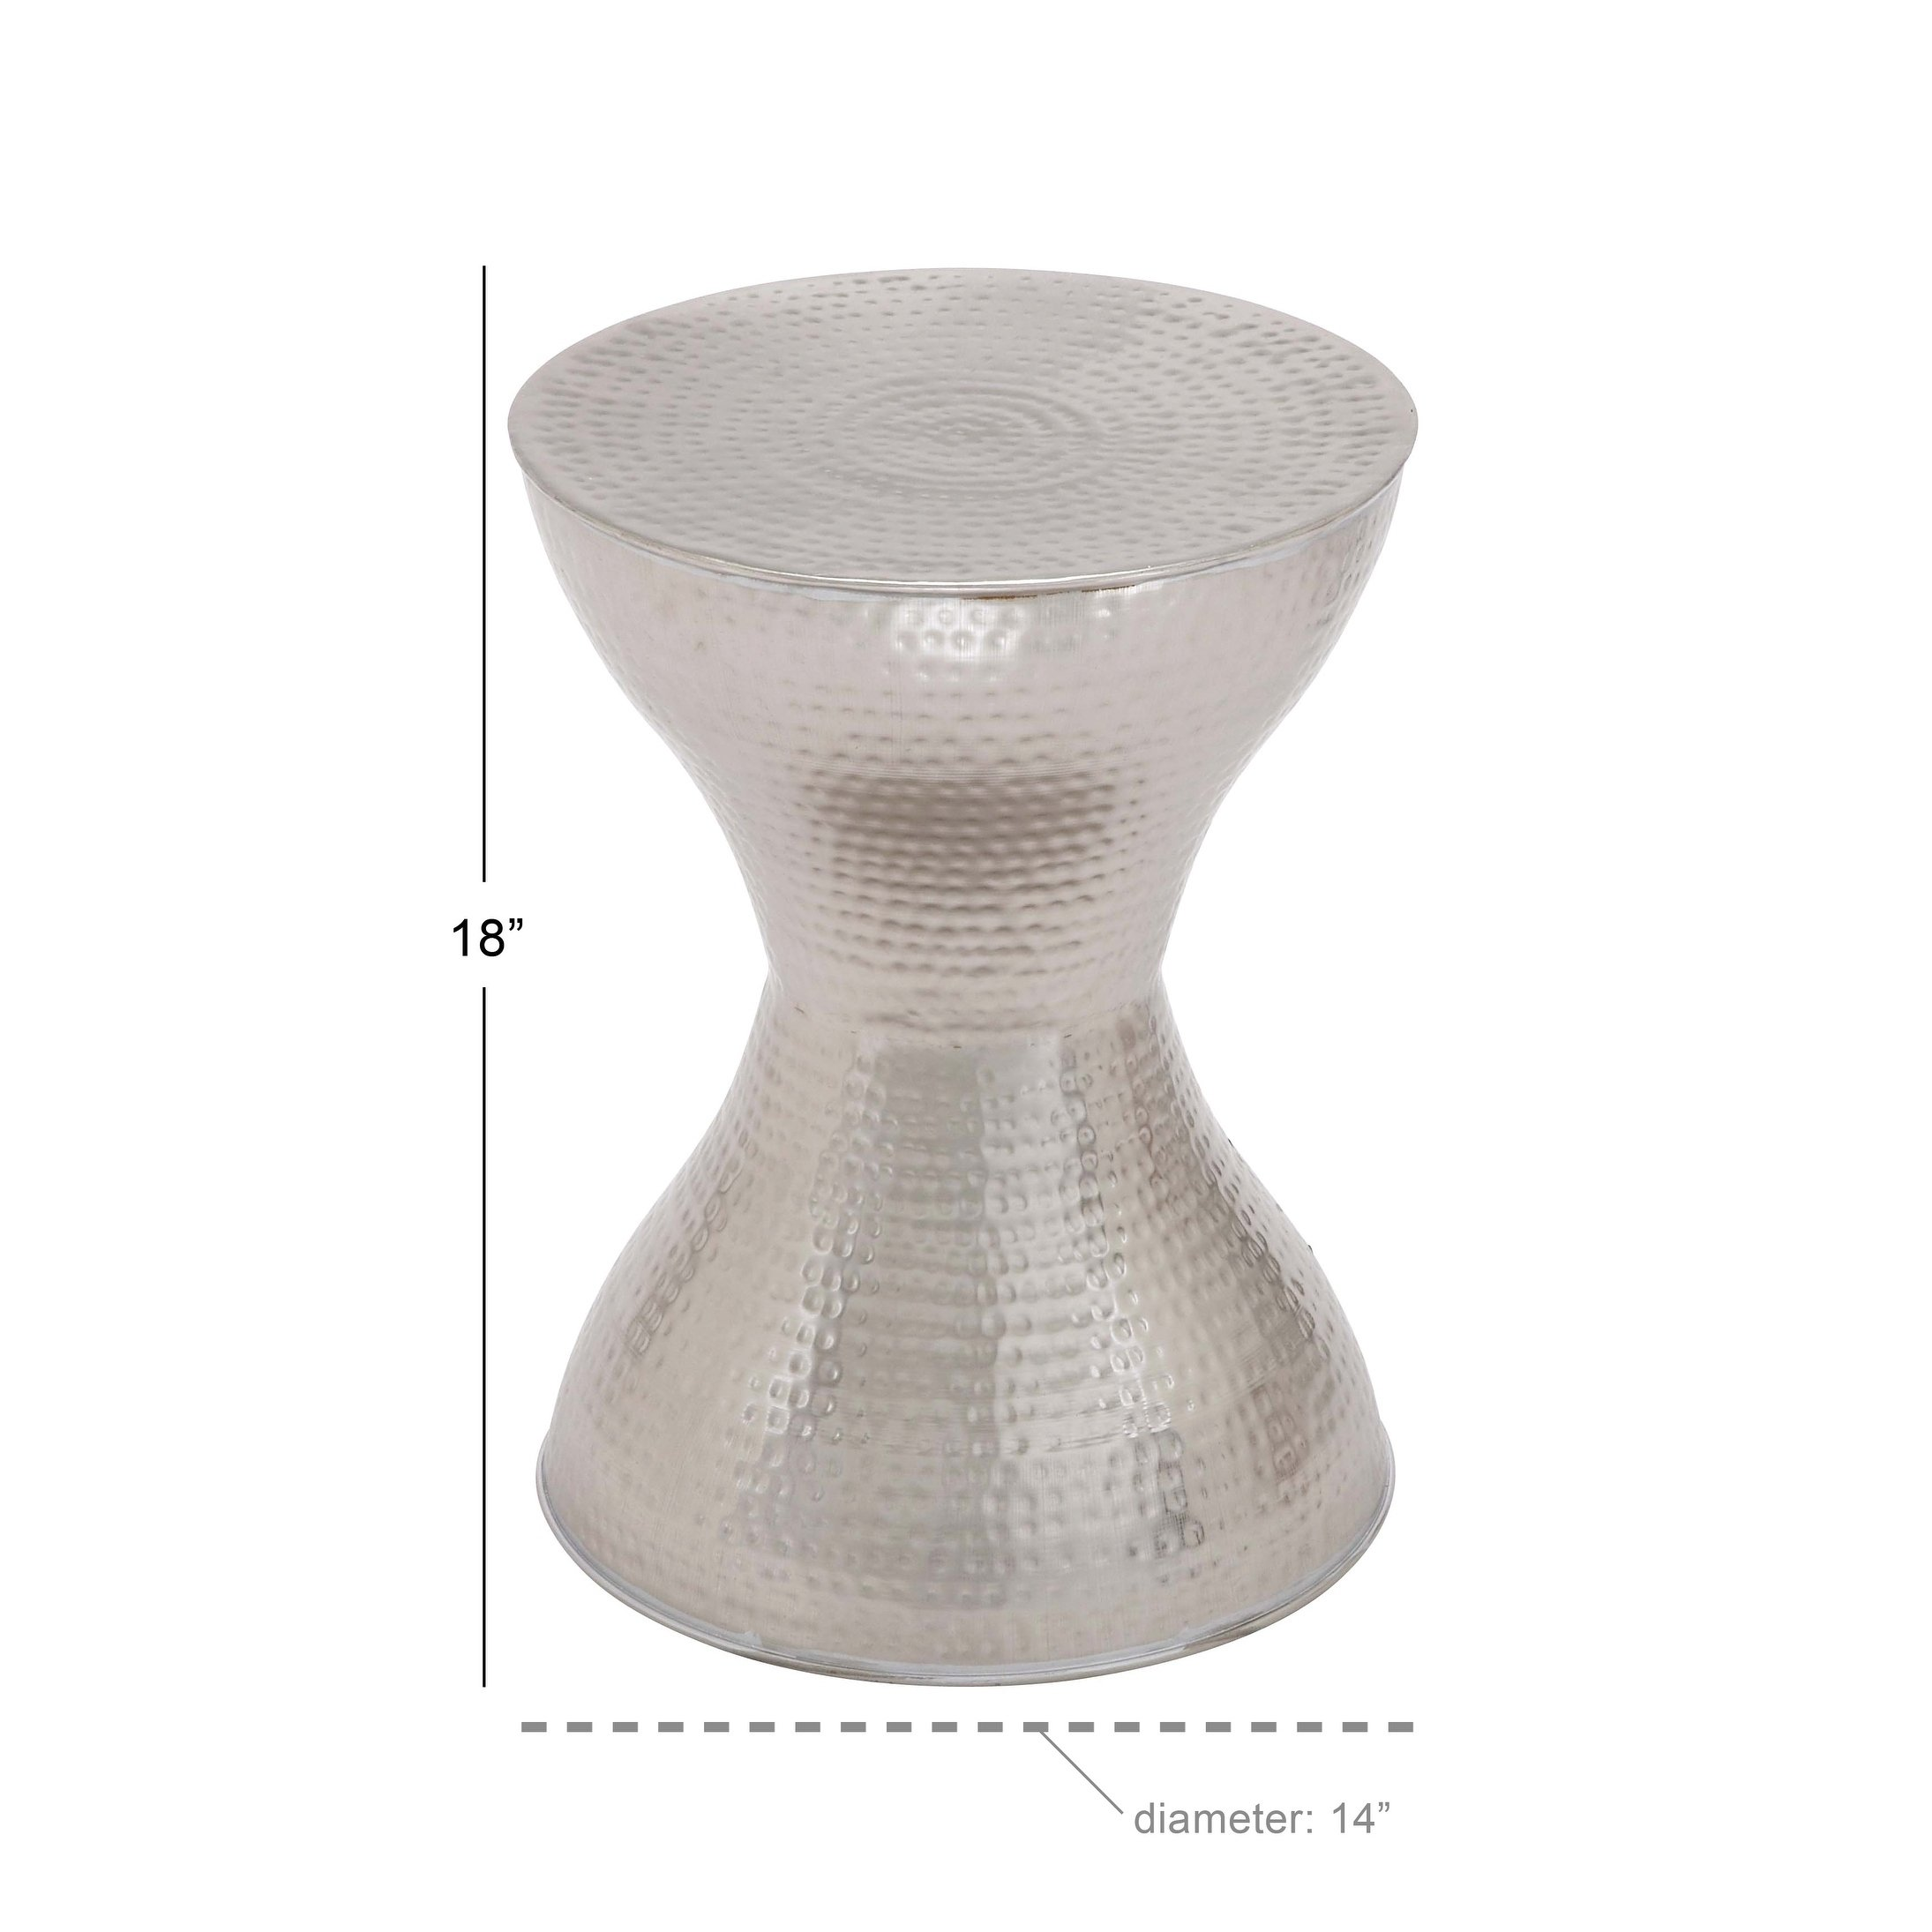 modern inch silver hourglass accent table studio vanora free shipping today large contemporary lamps dining decor clearance chairs round patio chair half circle coffee antique